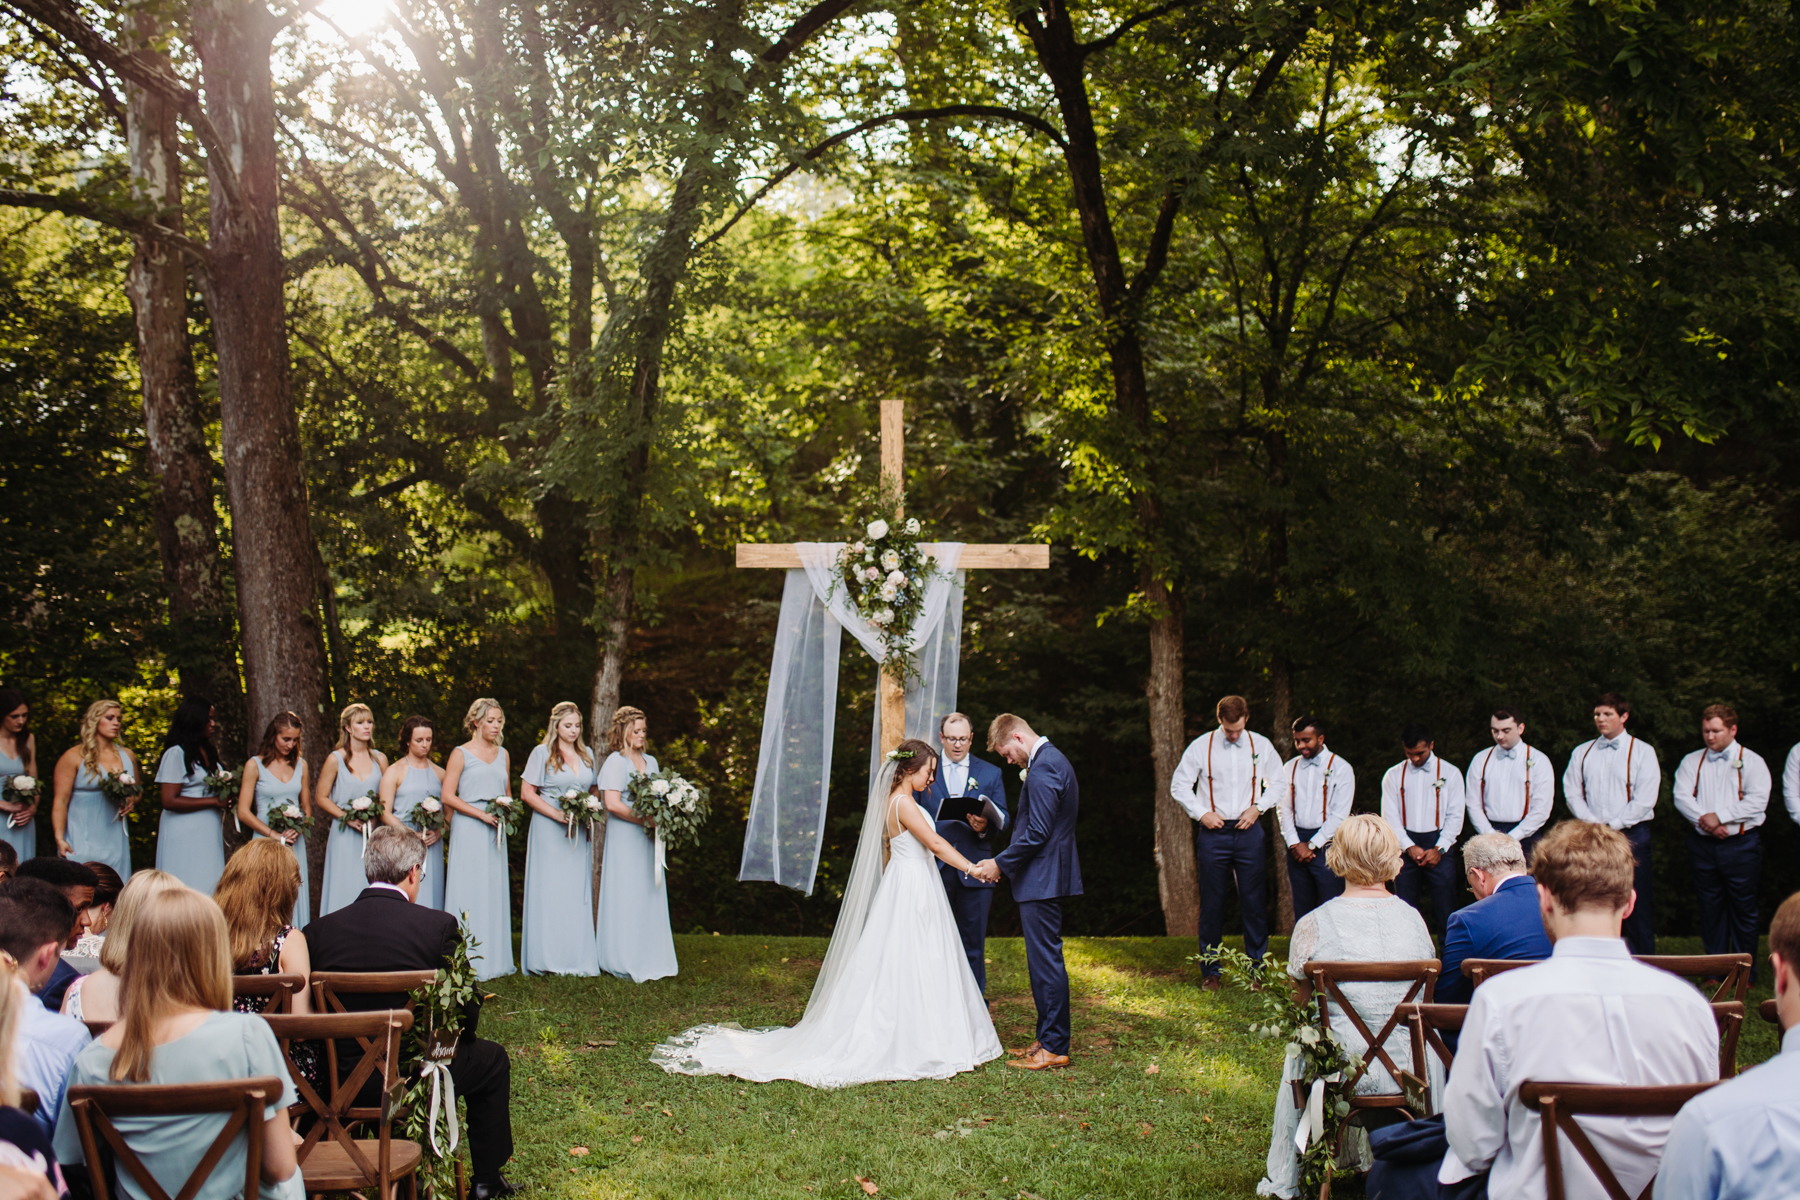 Evening ceremony of a Sunny summer wedding at Dara's Garden in Knoxville, Tennessee